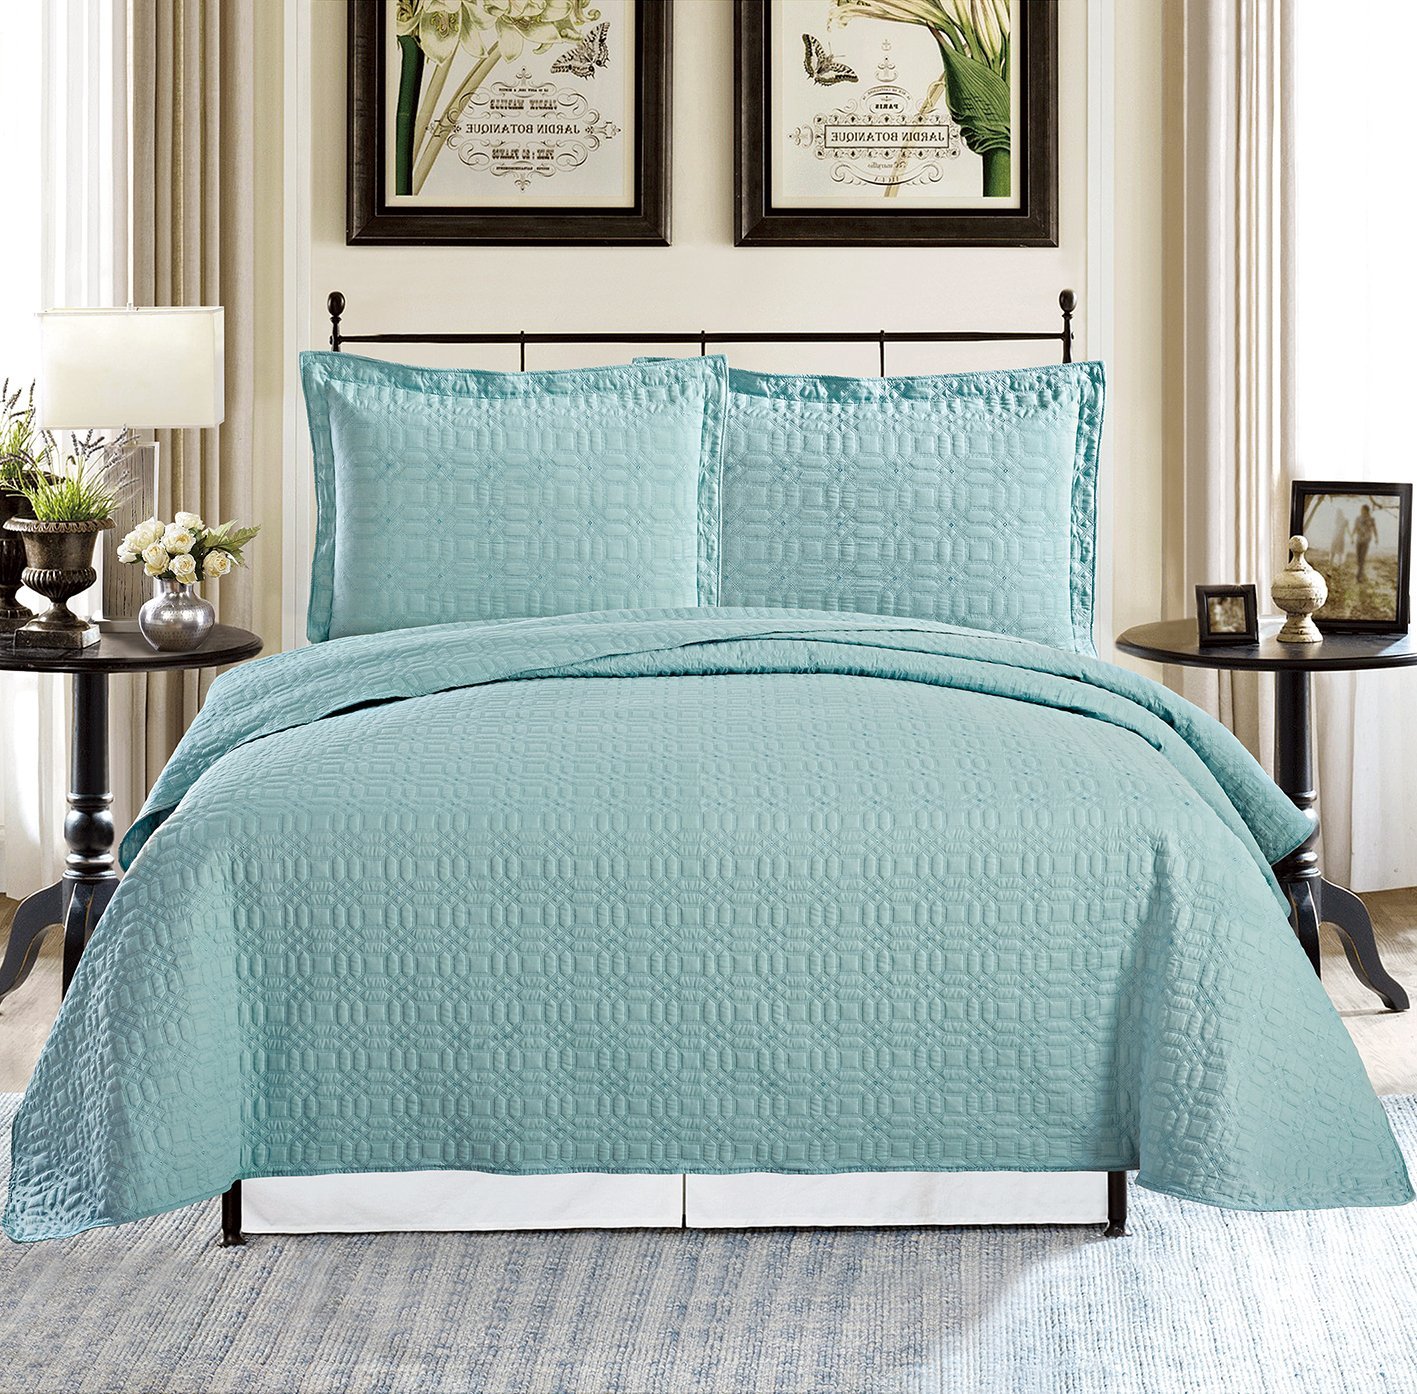 All American Collection New 3pc Square Design 100% Cotton Coverlet Set Queen Oversize, Turquoise